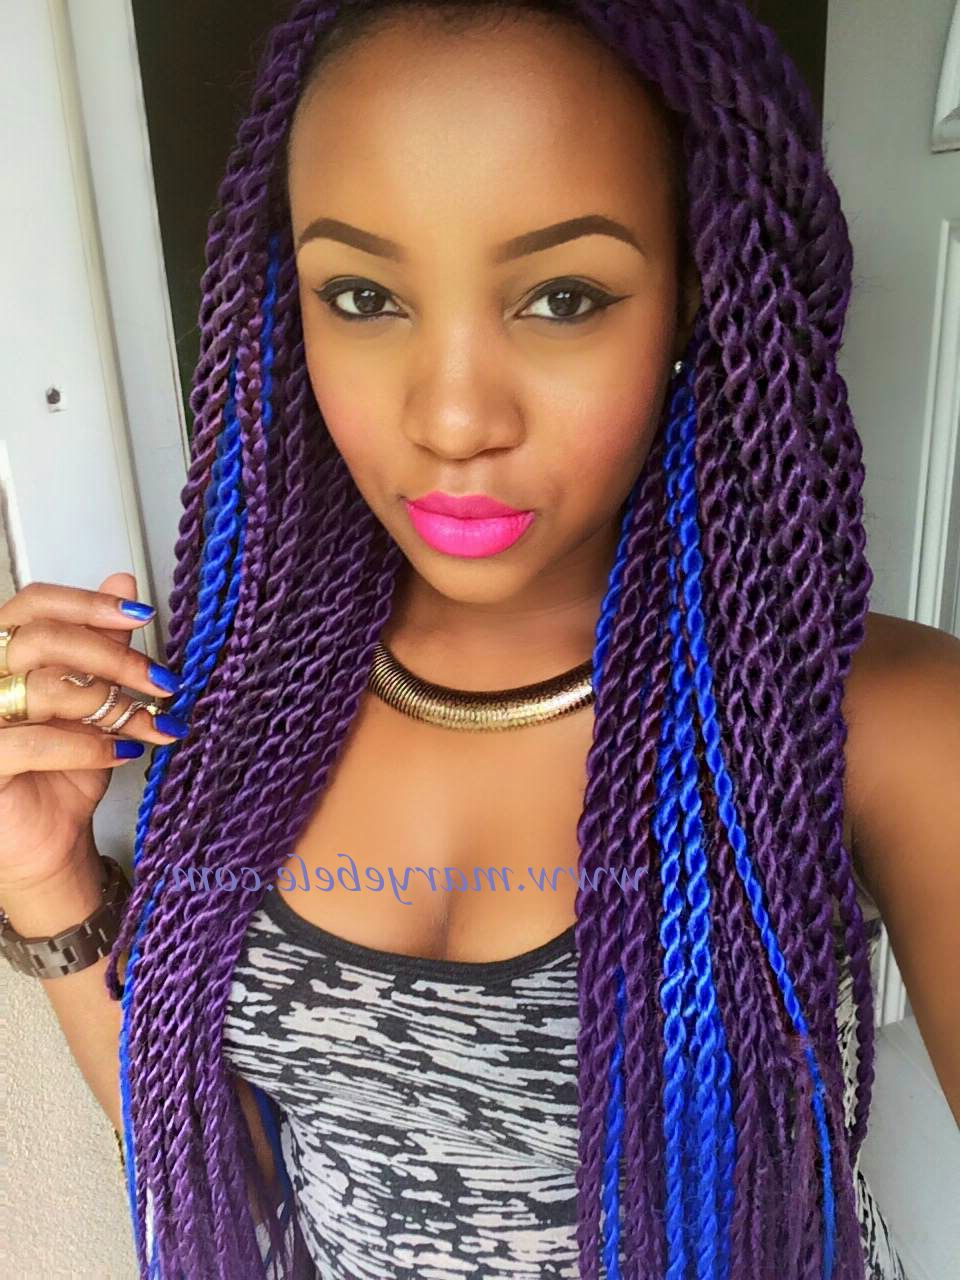 Widely Used Black Twists Micro Braids With Golden Highlights Pertaining To Purple & Blue Braids. Peace, Love & Unicorns (View 18 of 20)